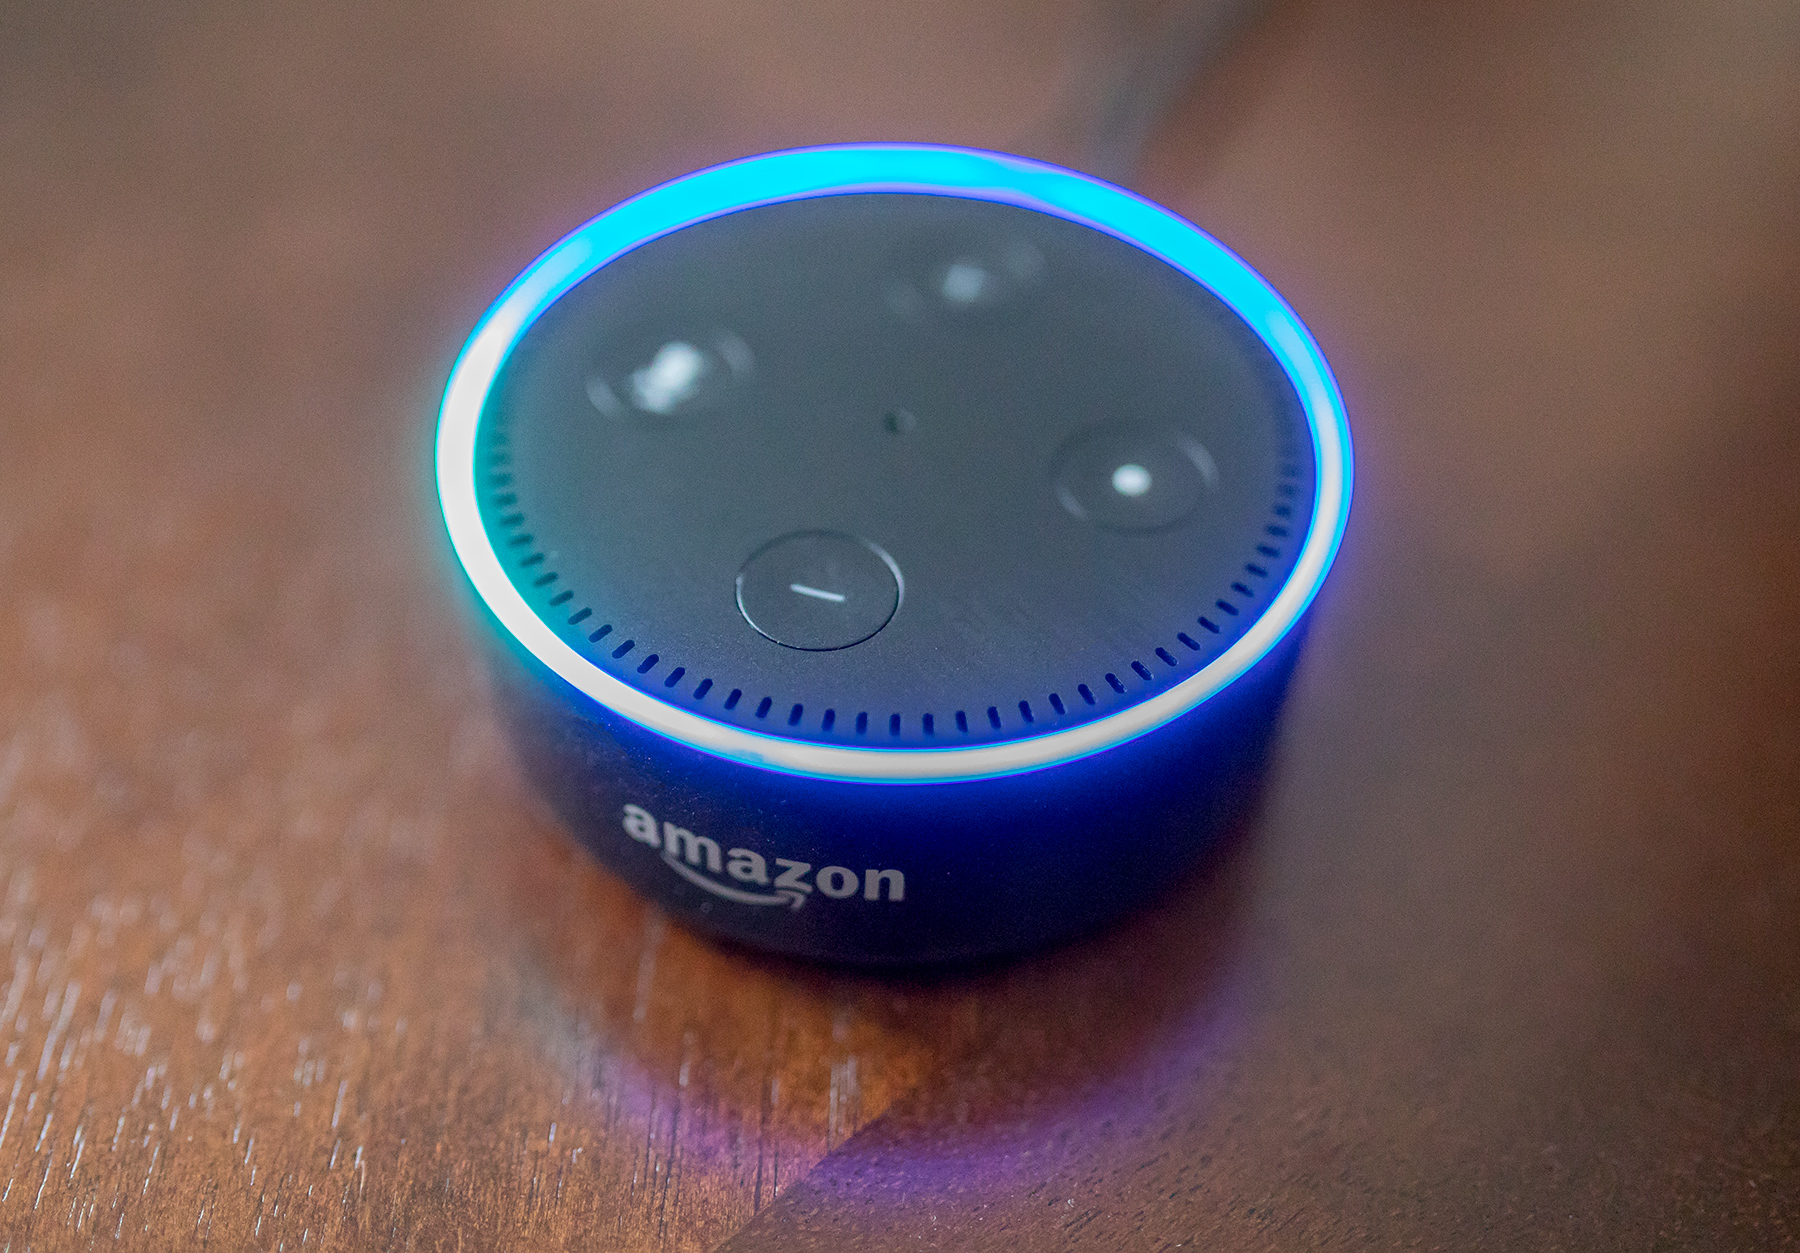 Amazon Tests New Alexa Mode that Makes It Shut Up, Mostly